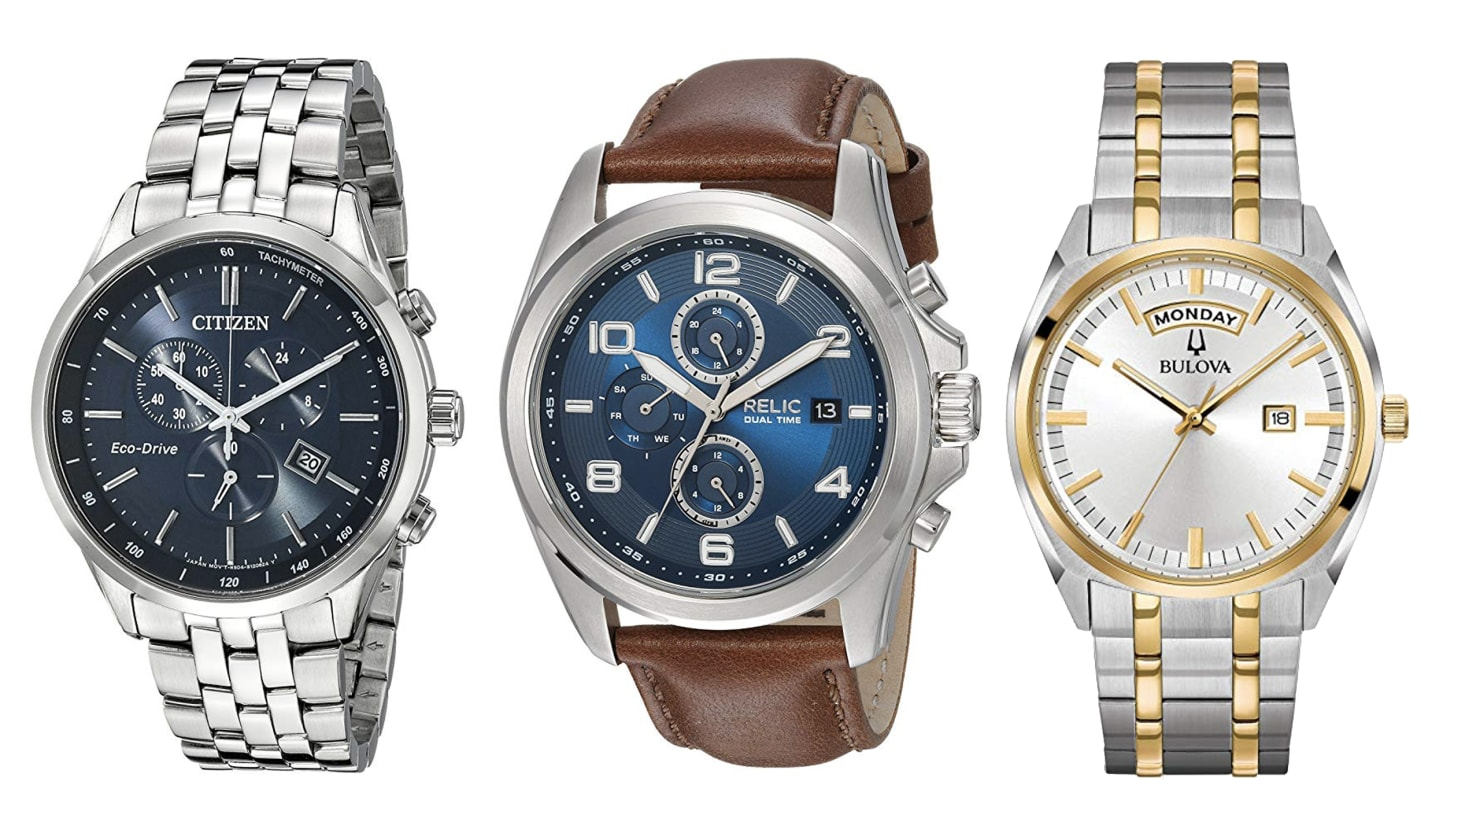 Amazon Is Taking Up to 40% Off Watches Today Only, Just in Time for Father's Day